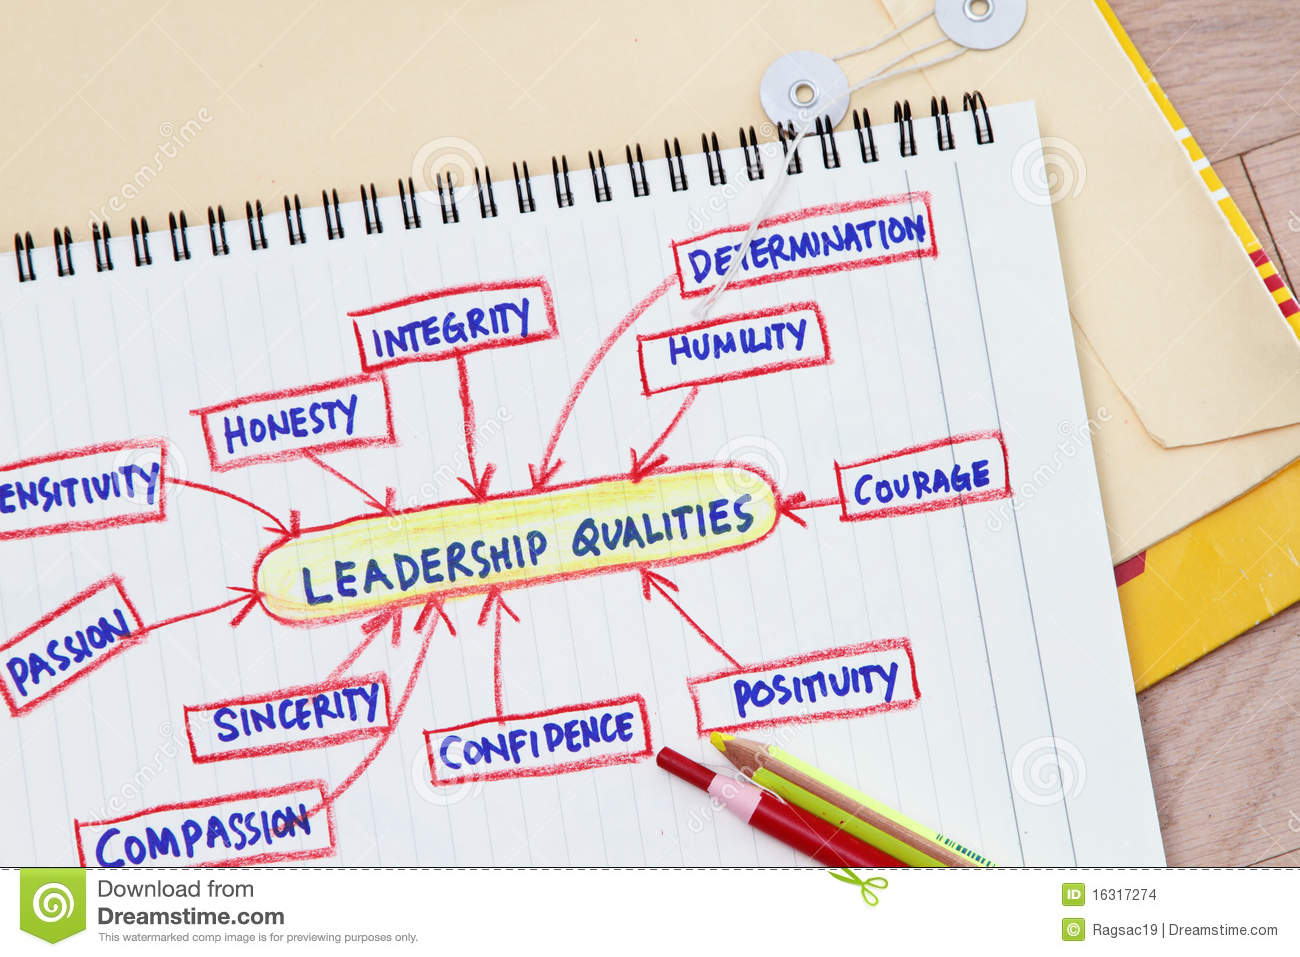 leafership qualities Leadership traits are the personal qualities that shape effective leaders many leadership traits are transferrable across industries emotional intelligence, resourcefulness and flexibility, for example, enable people in positions of authority to help employees complete initiatives and meet business goals, whether in business, government or education.